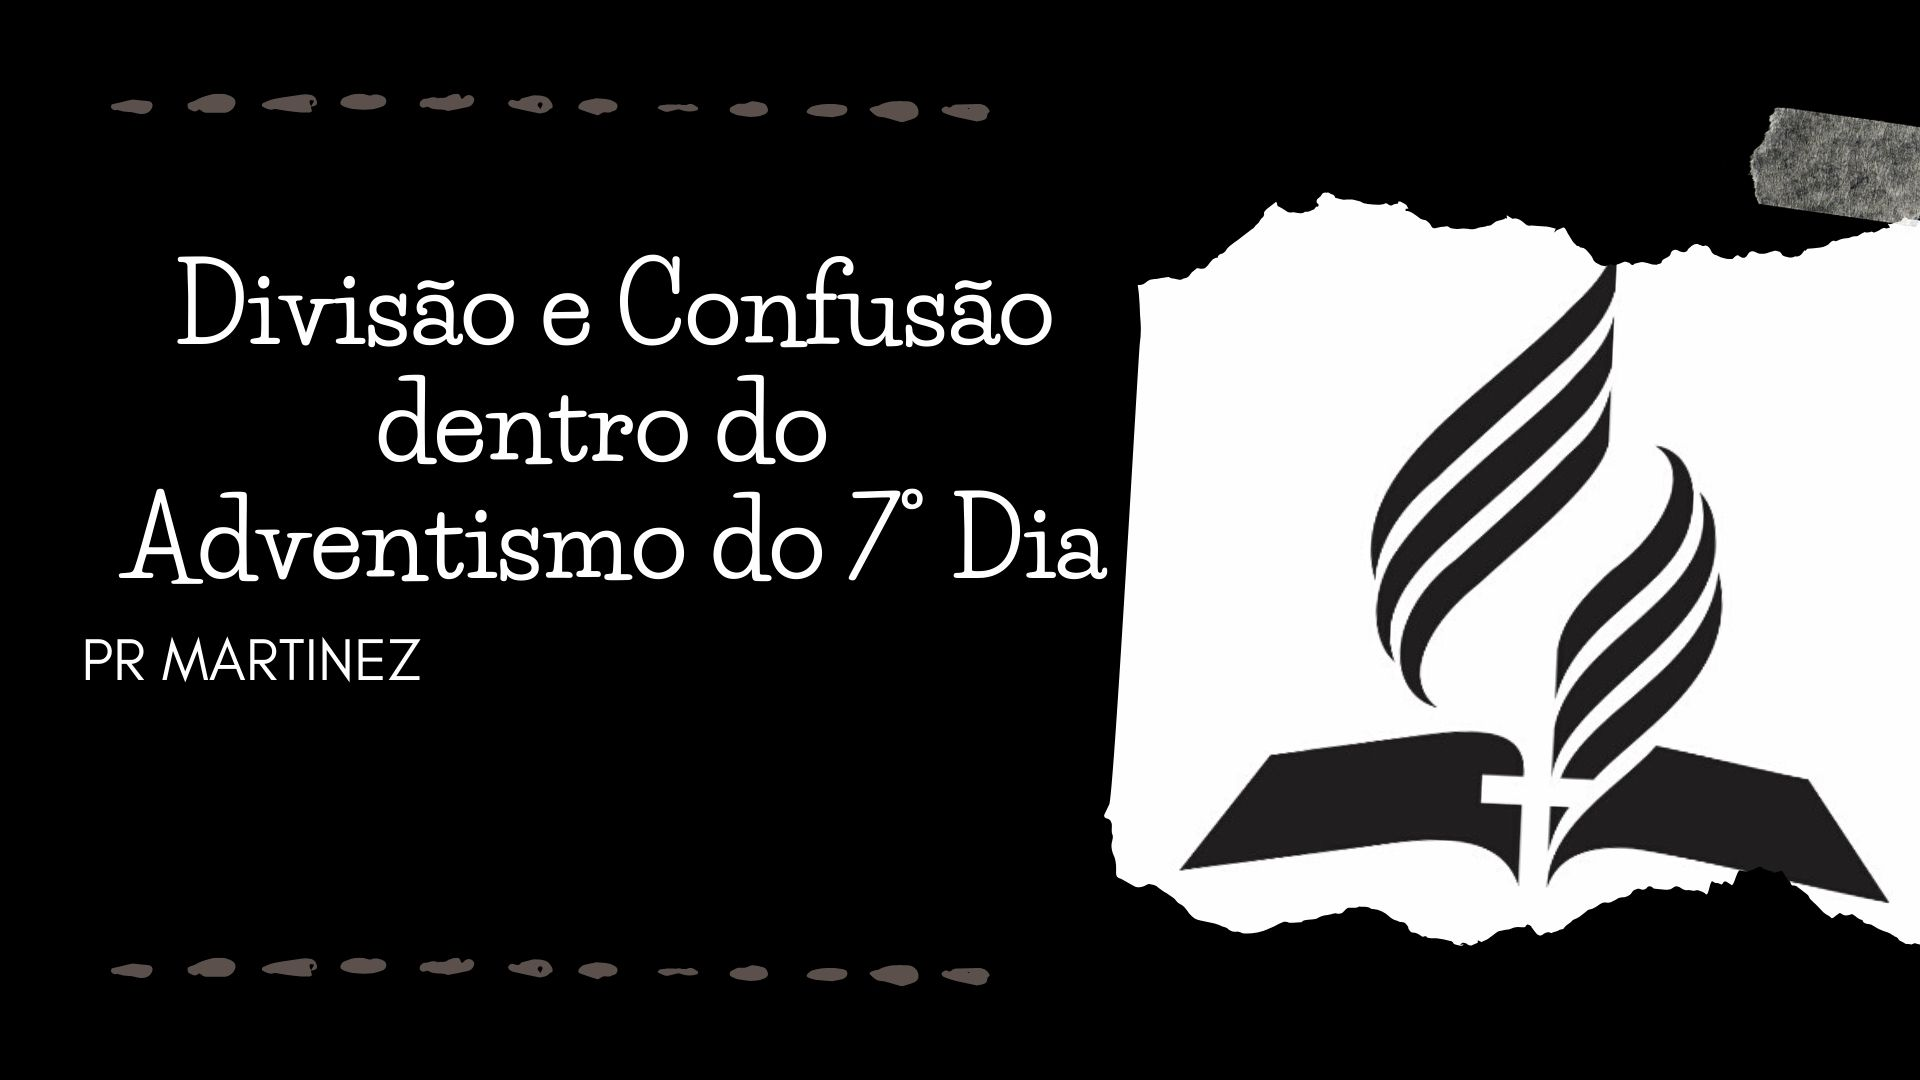 Divisão e Confusão dentro do Adventismo do 7º Dia